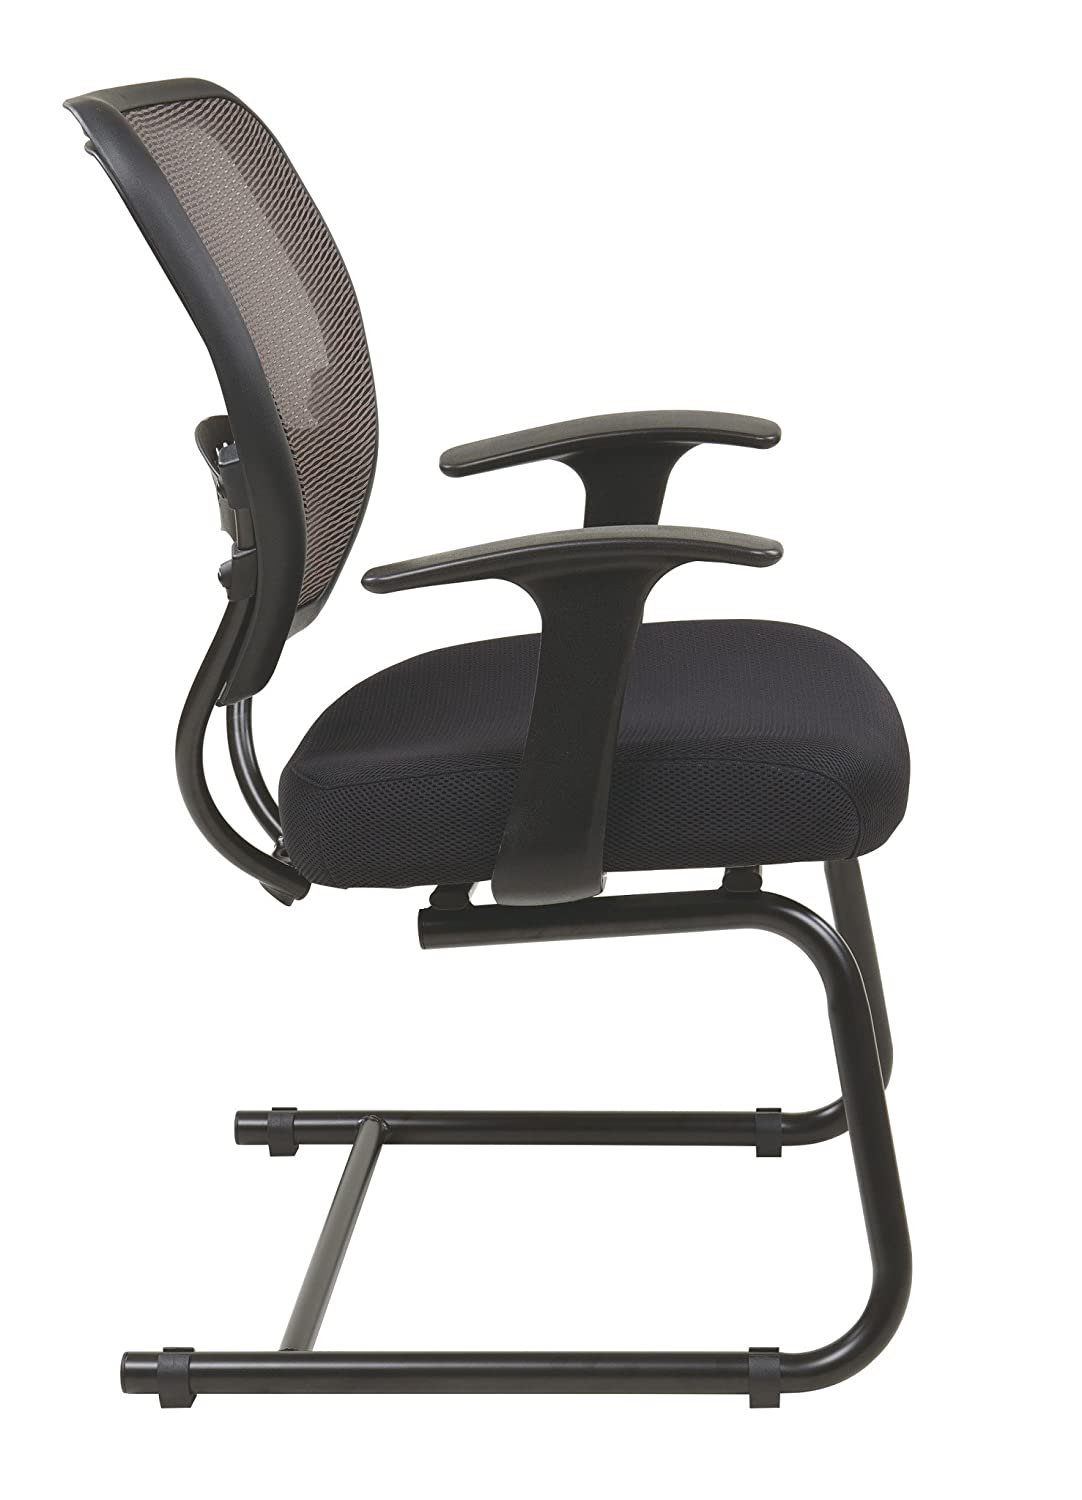 office star professional air grid deluxe task chair. Amazon.com: SPACE Seating AirGrid Latte Back And Black Padded Mesh Seat, 2-to-1 Synchro Tilt Control, Adjustable Arms Tension With Nylon Base Office Star Professional Air Grid Deluxe Task Chair